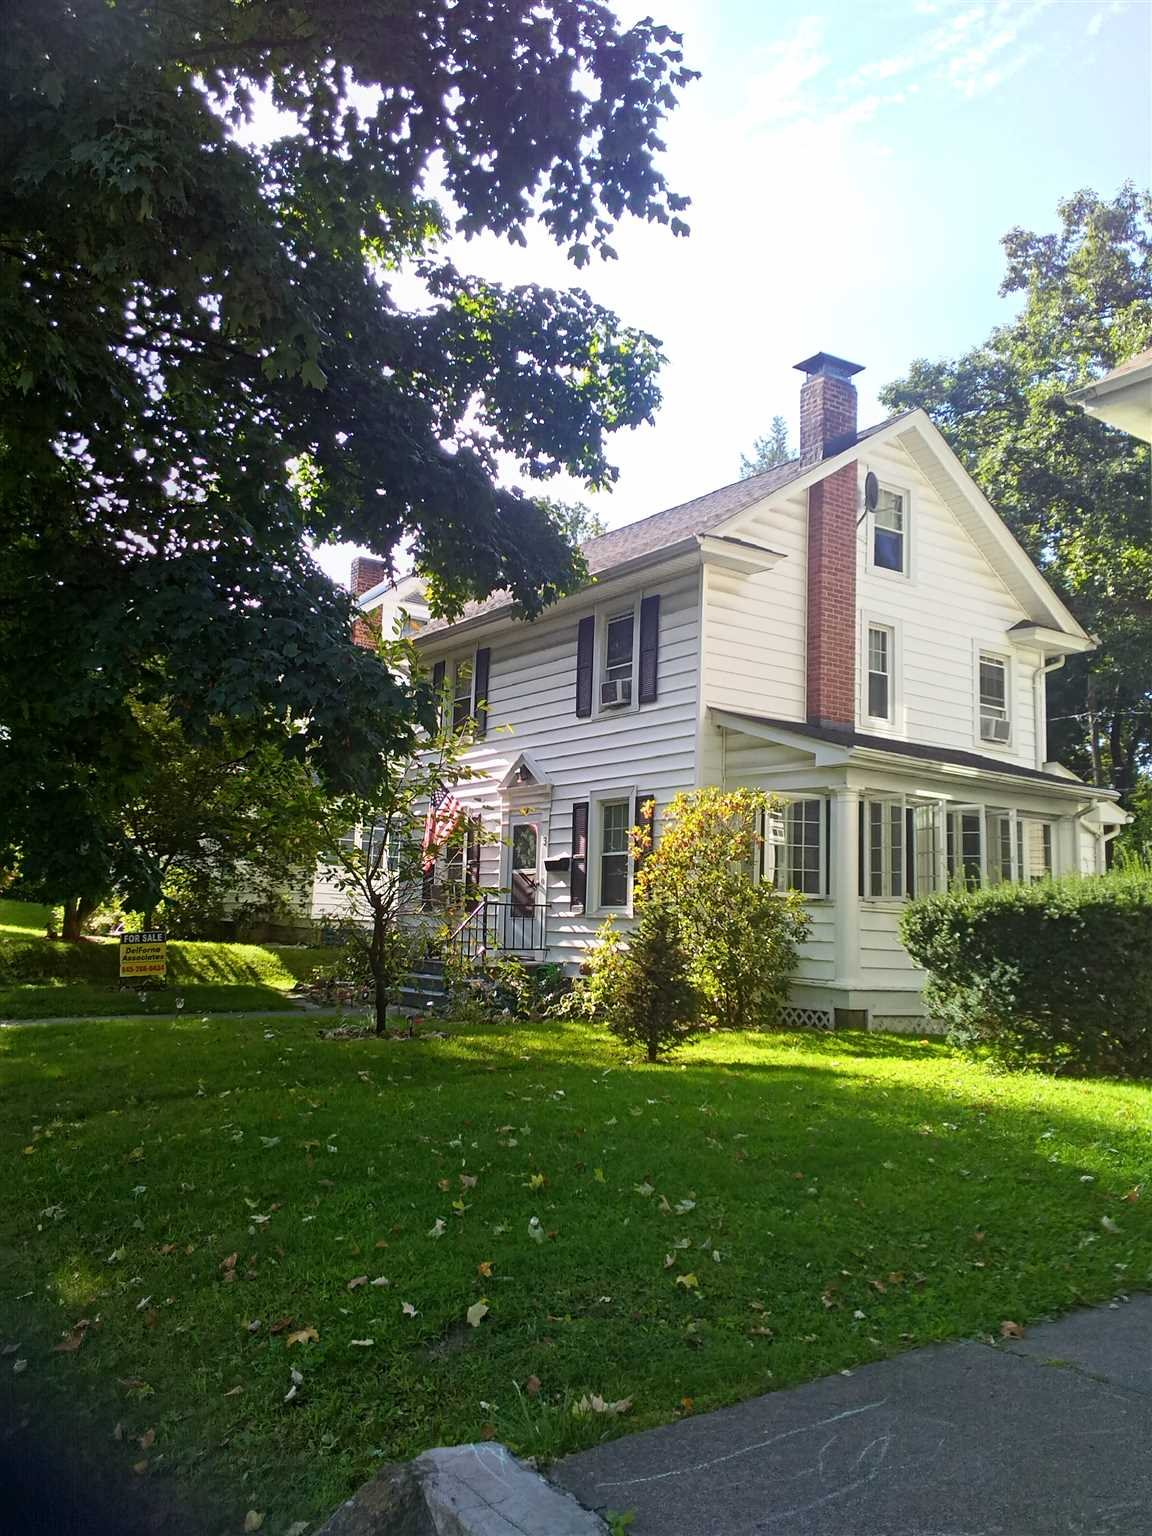 Single Family Home for Sale at 3 LINDBERGH 3 LINDBERGH Poughkeepsie, New York 12603 United States